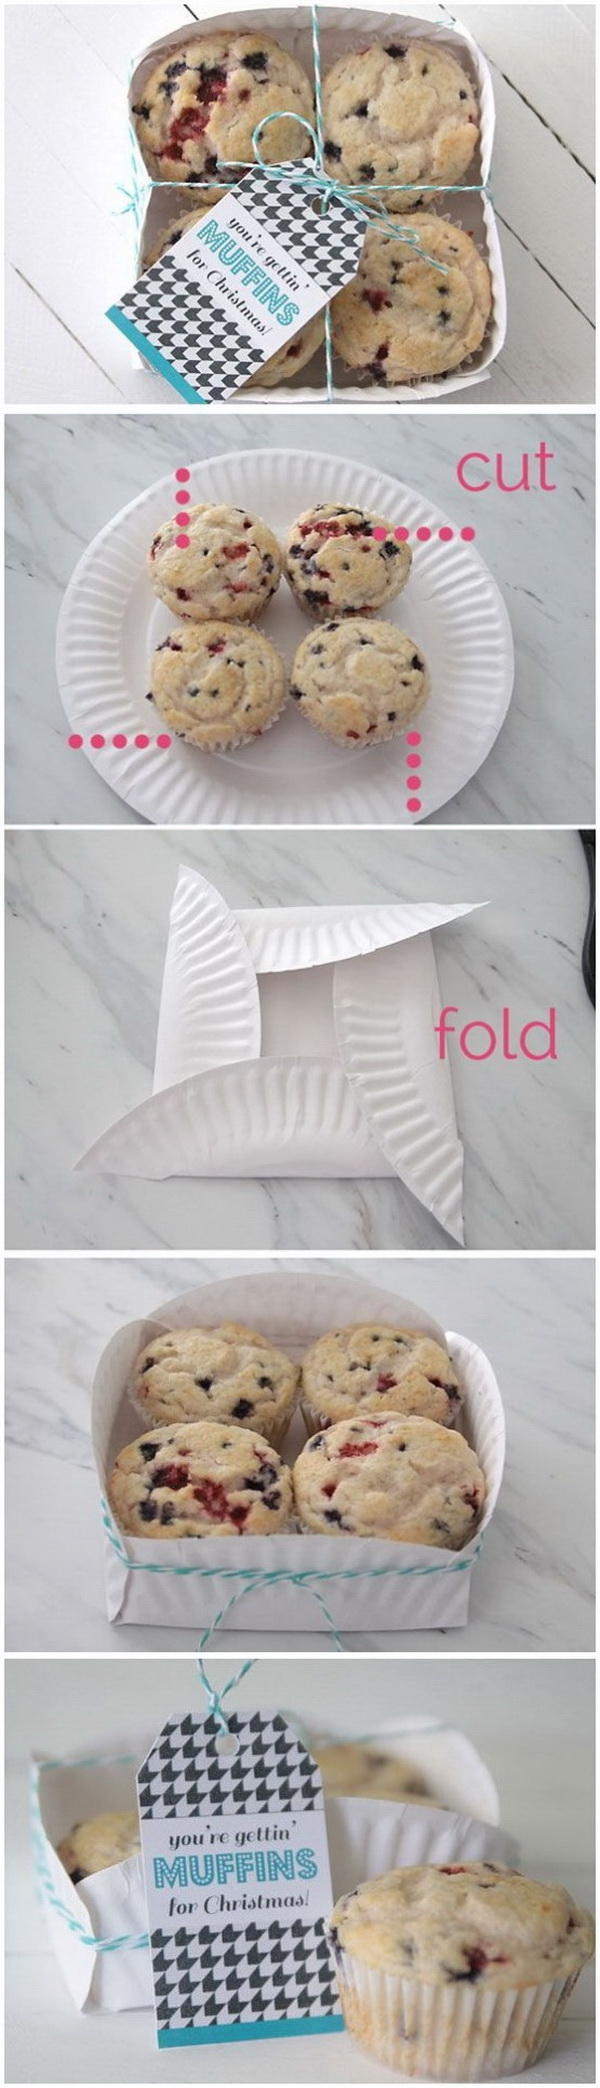 Easy Paper Plate Basket for Muffins.